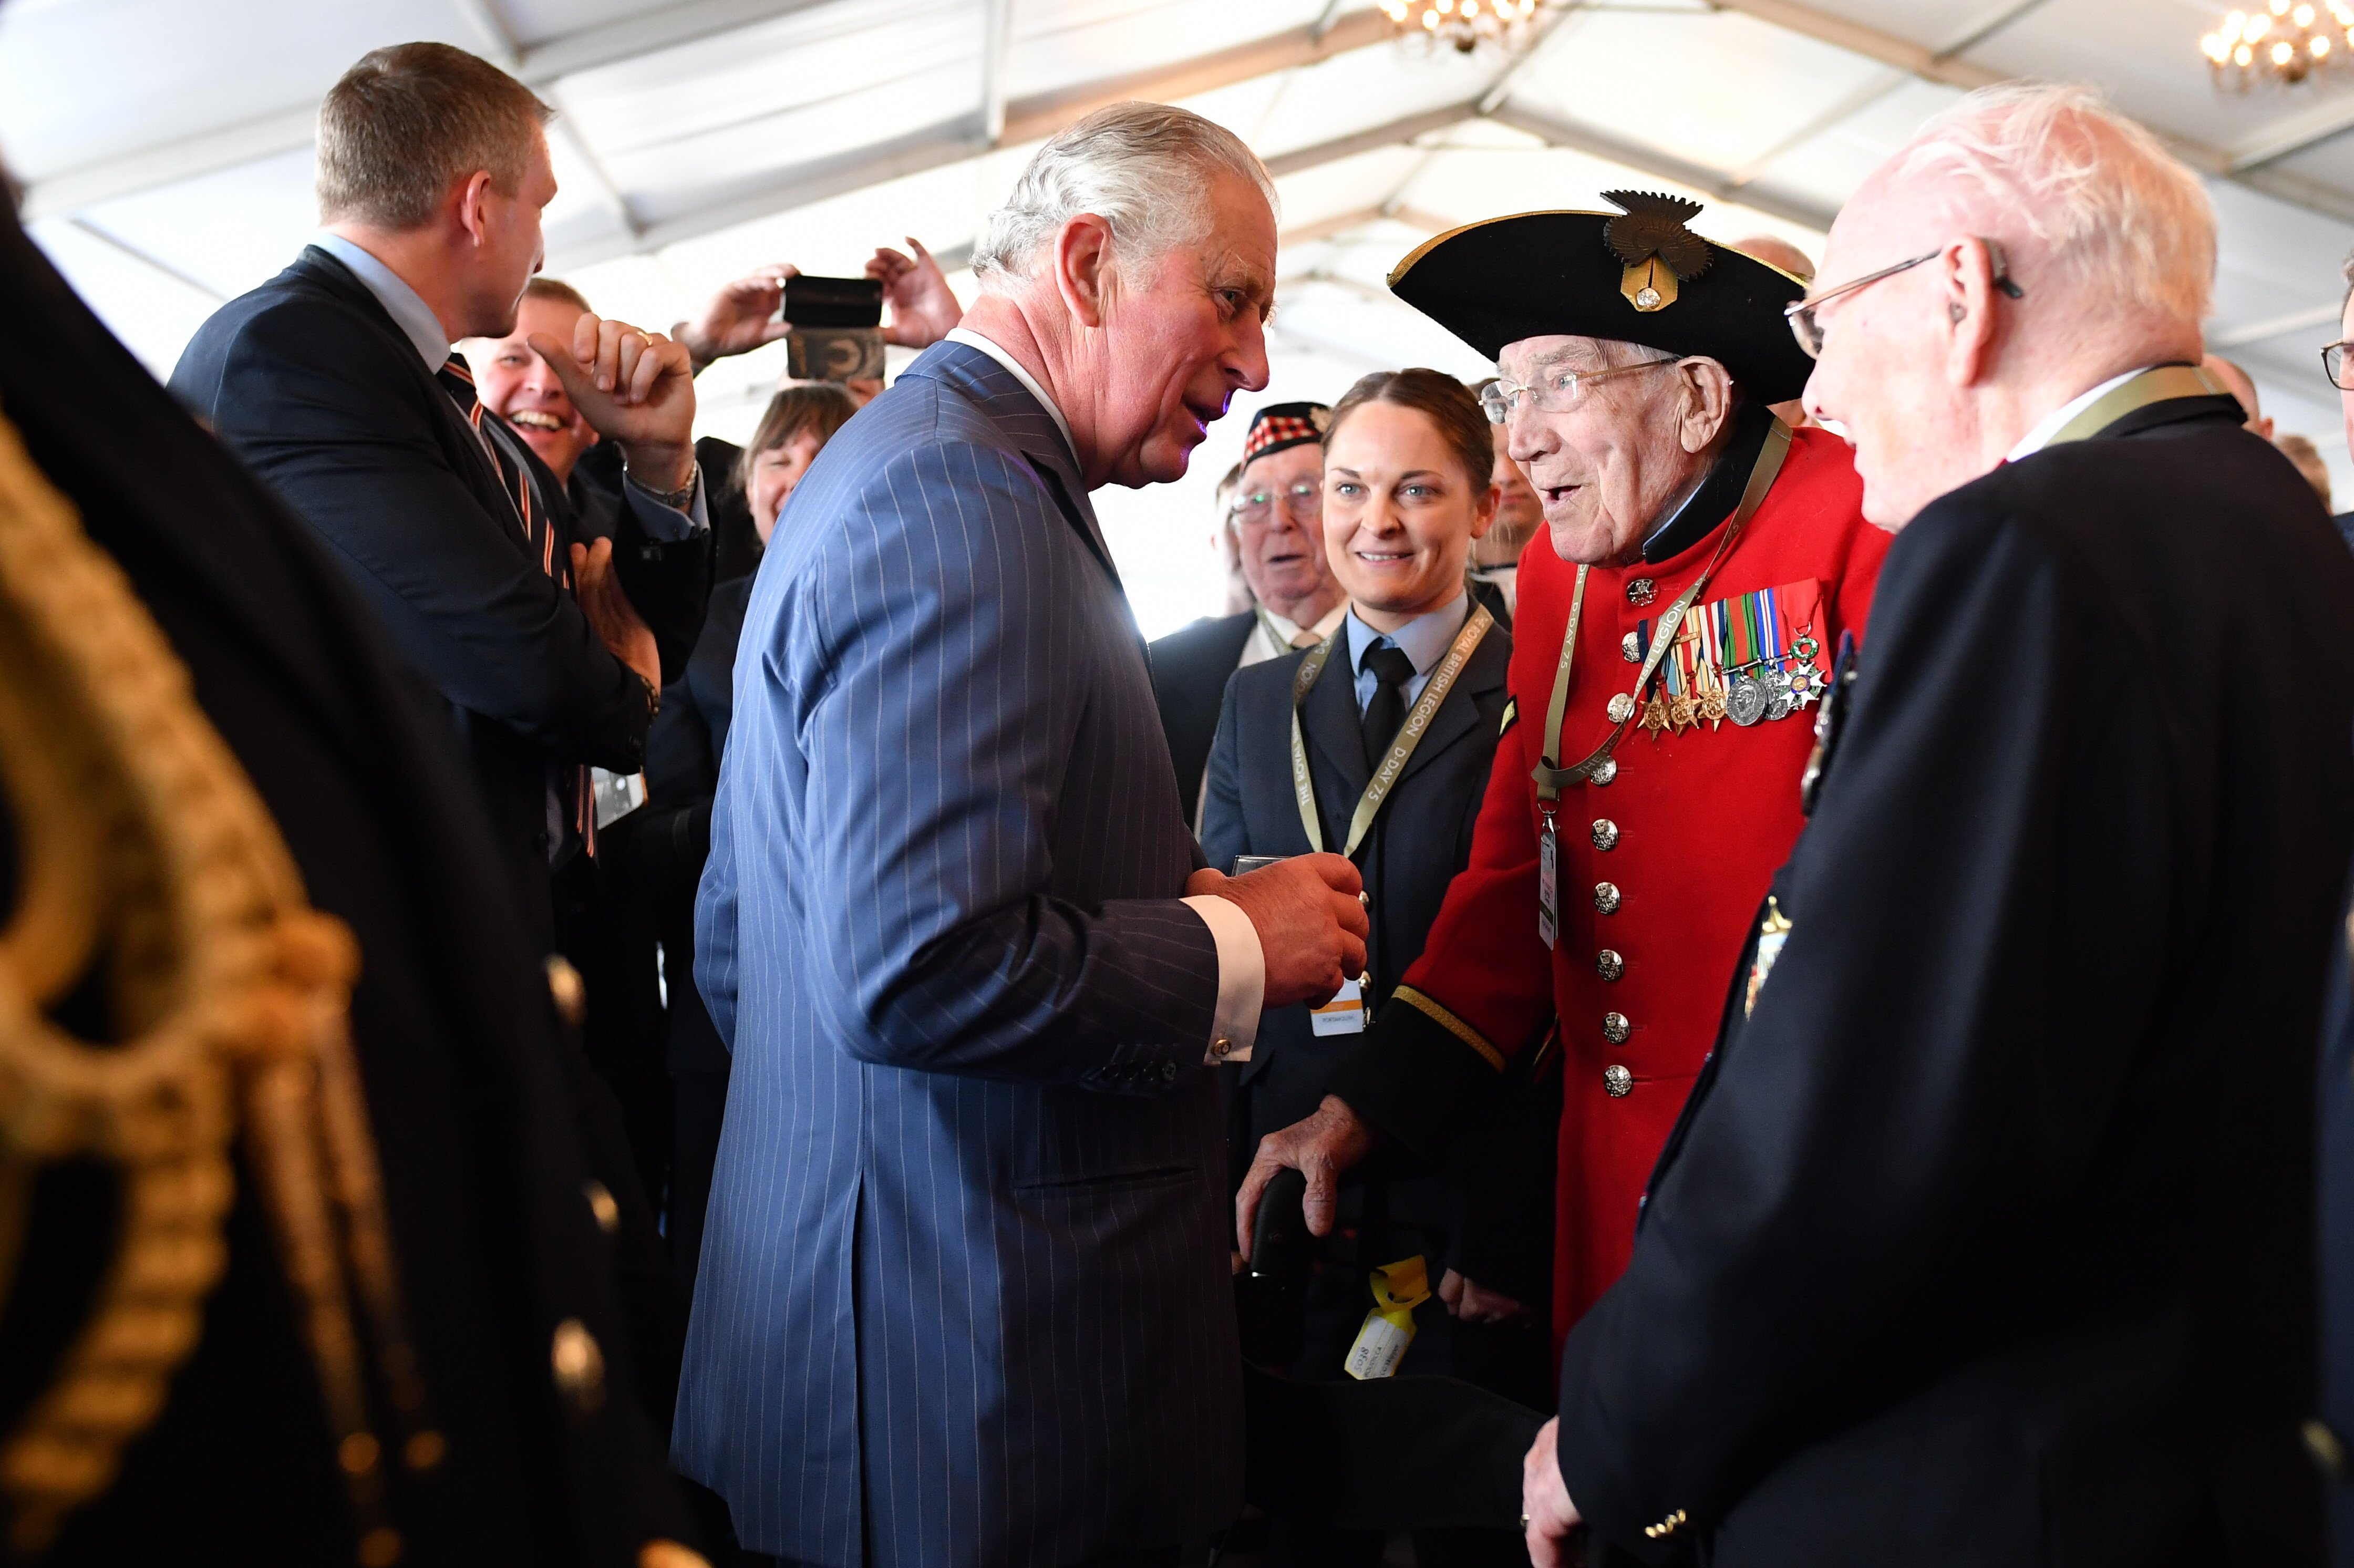 Prince Charles meeting veterans during the D-day 75 Commemorations in Portsmouth, England | Photo: Getty Images